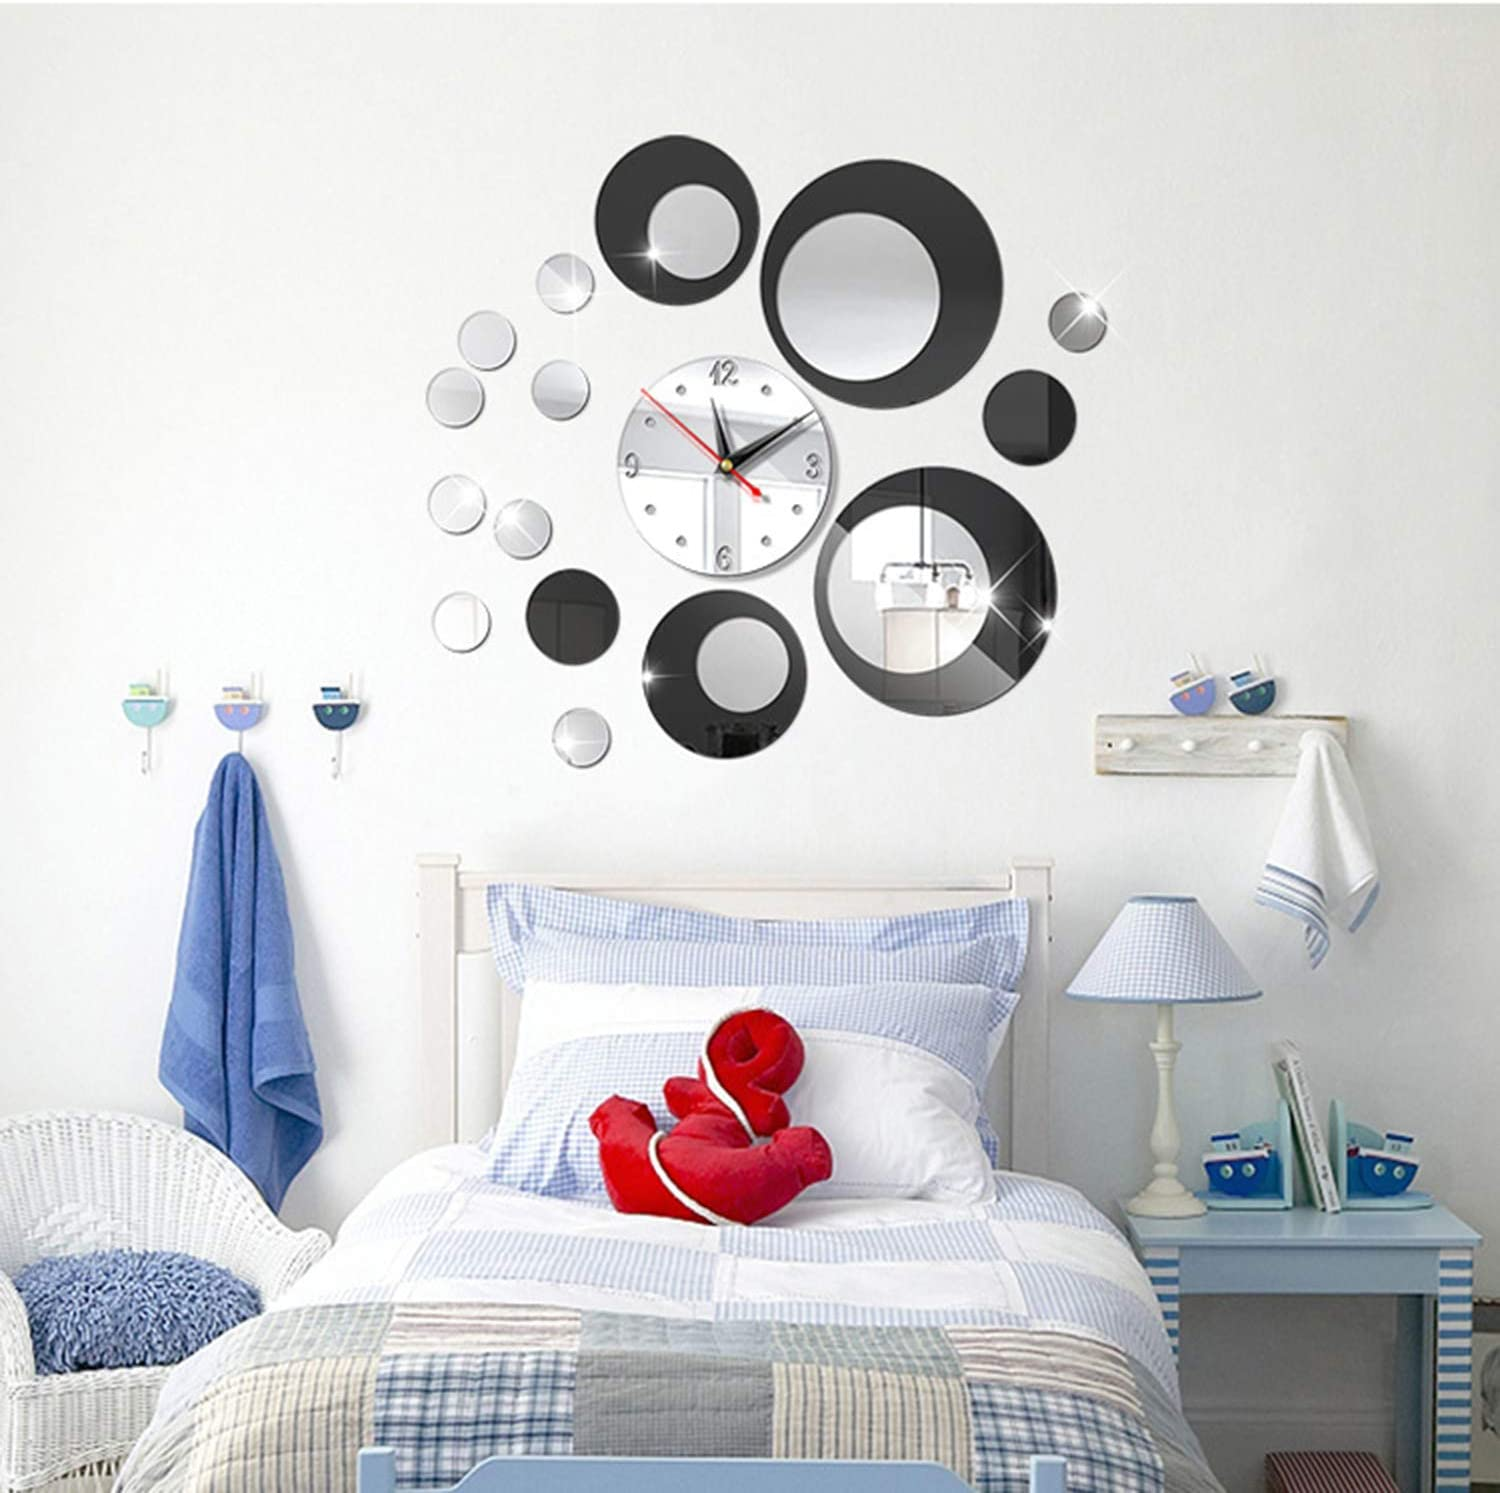 HOODDEAL Acrylic Clock Mirrors Style Removable Decal Vinyl Art Wall Sticker Home Decor (Silver Black)